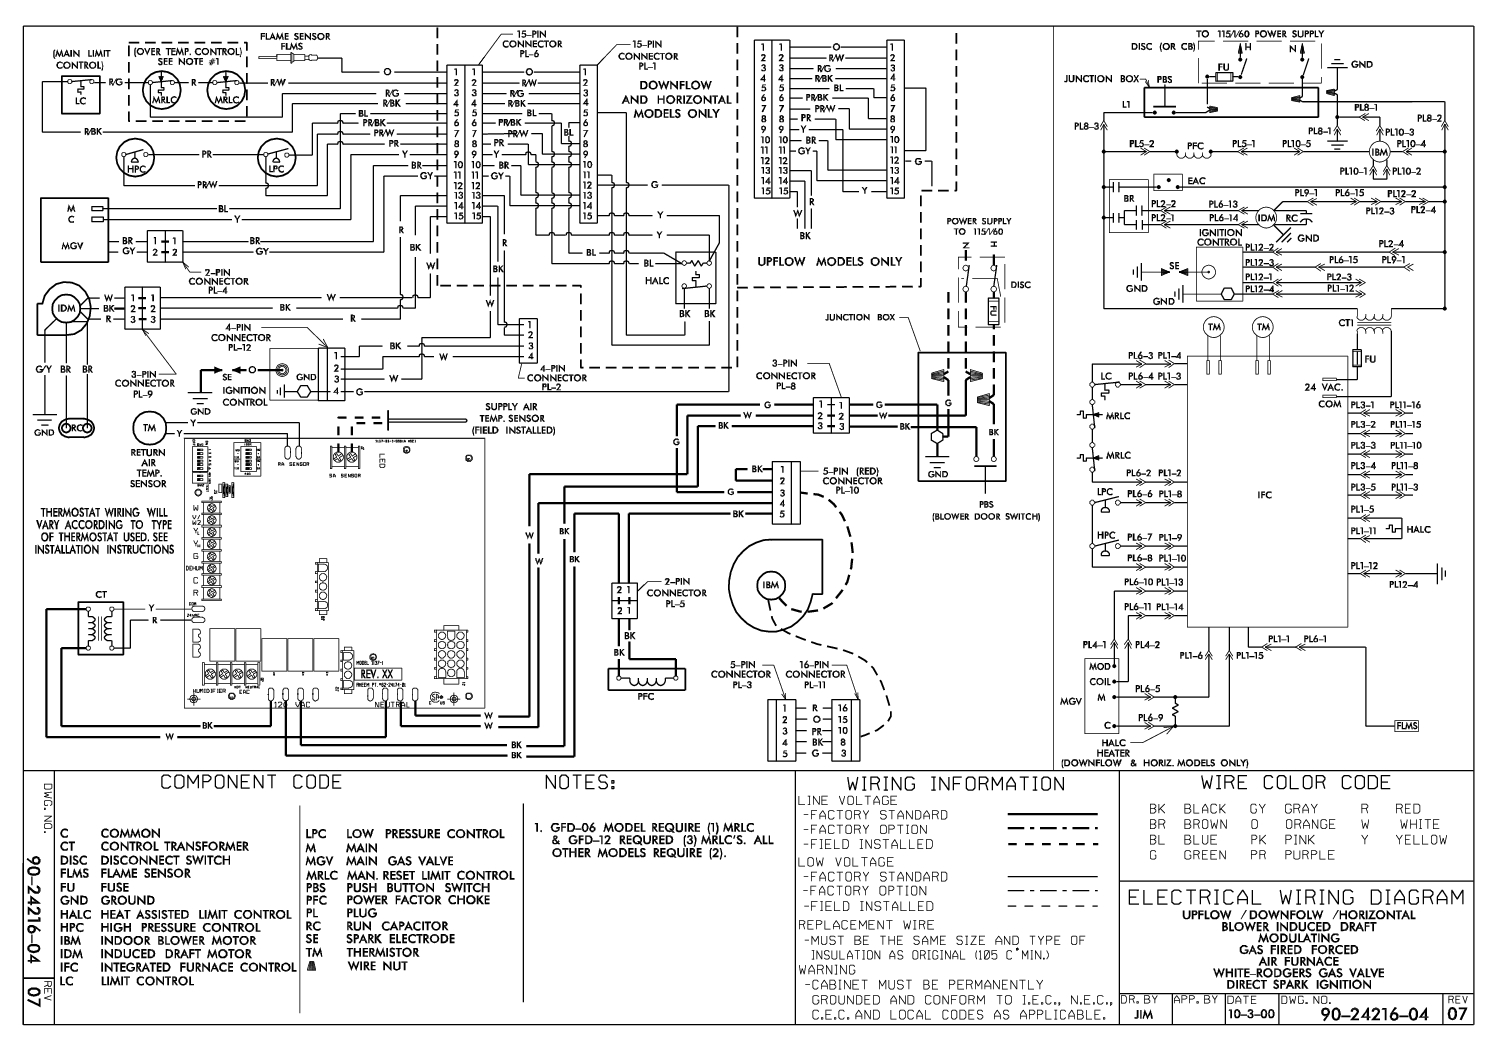 Older Gas Furnace Wiring Diagram | Wiring Diagram - Gas Furnace Wiring Diagram